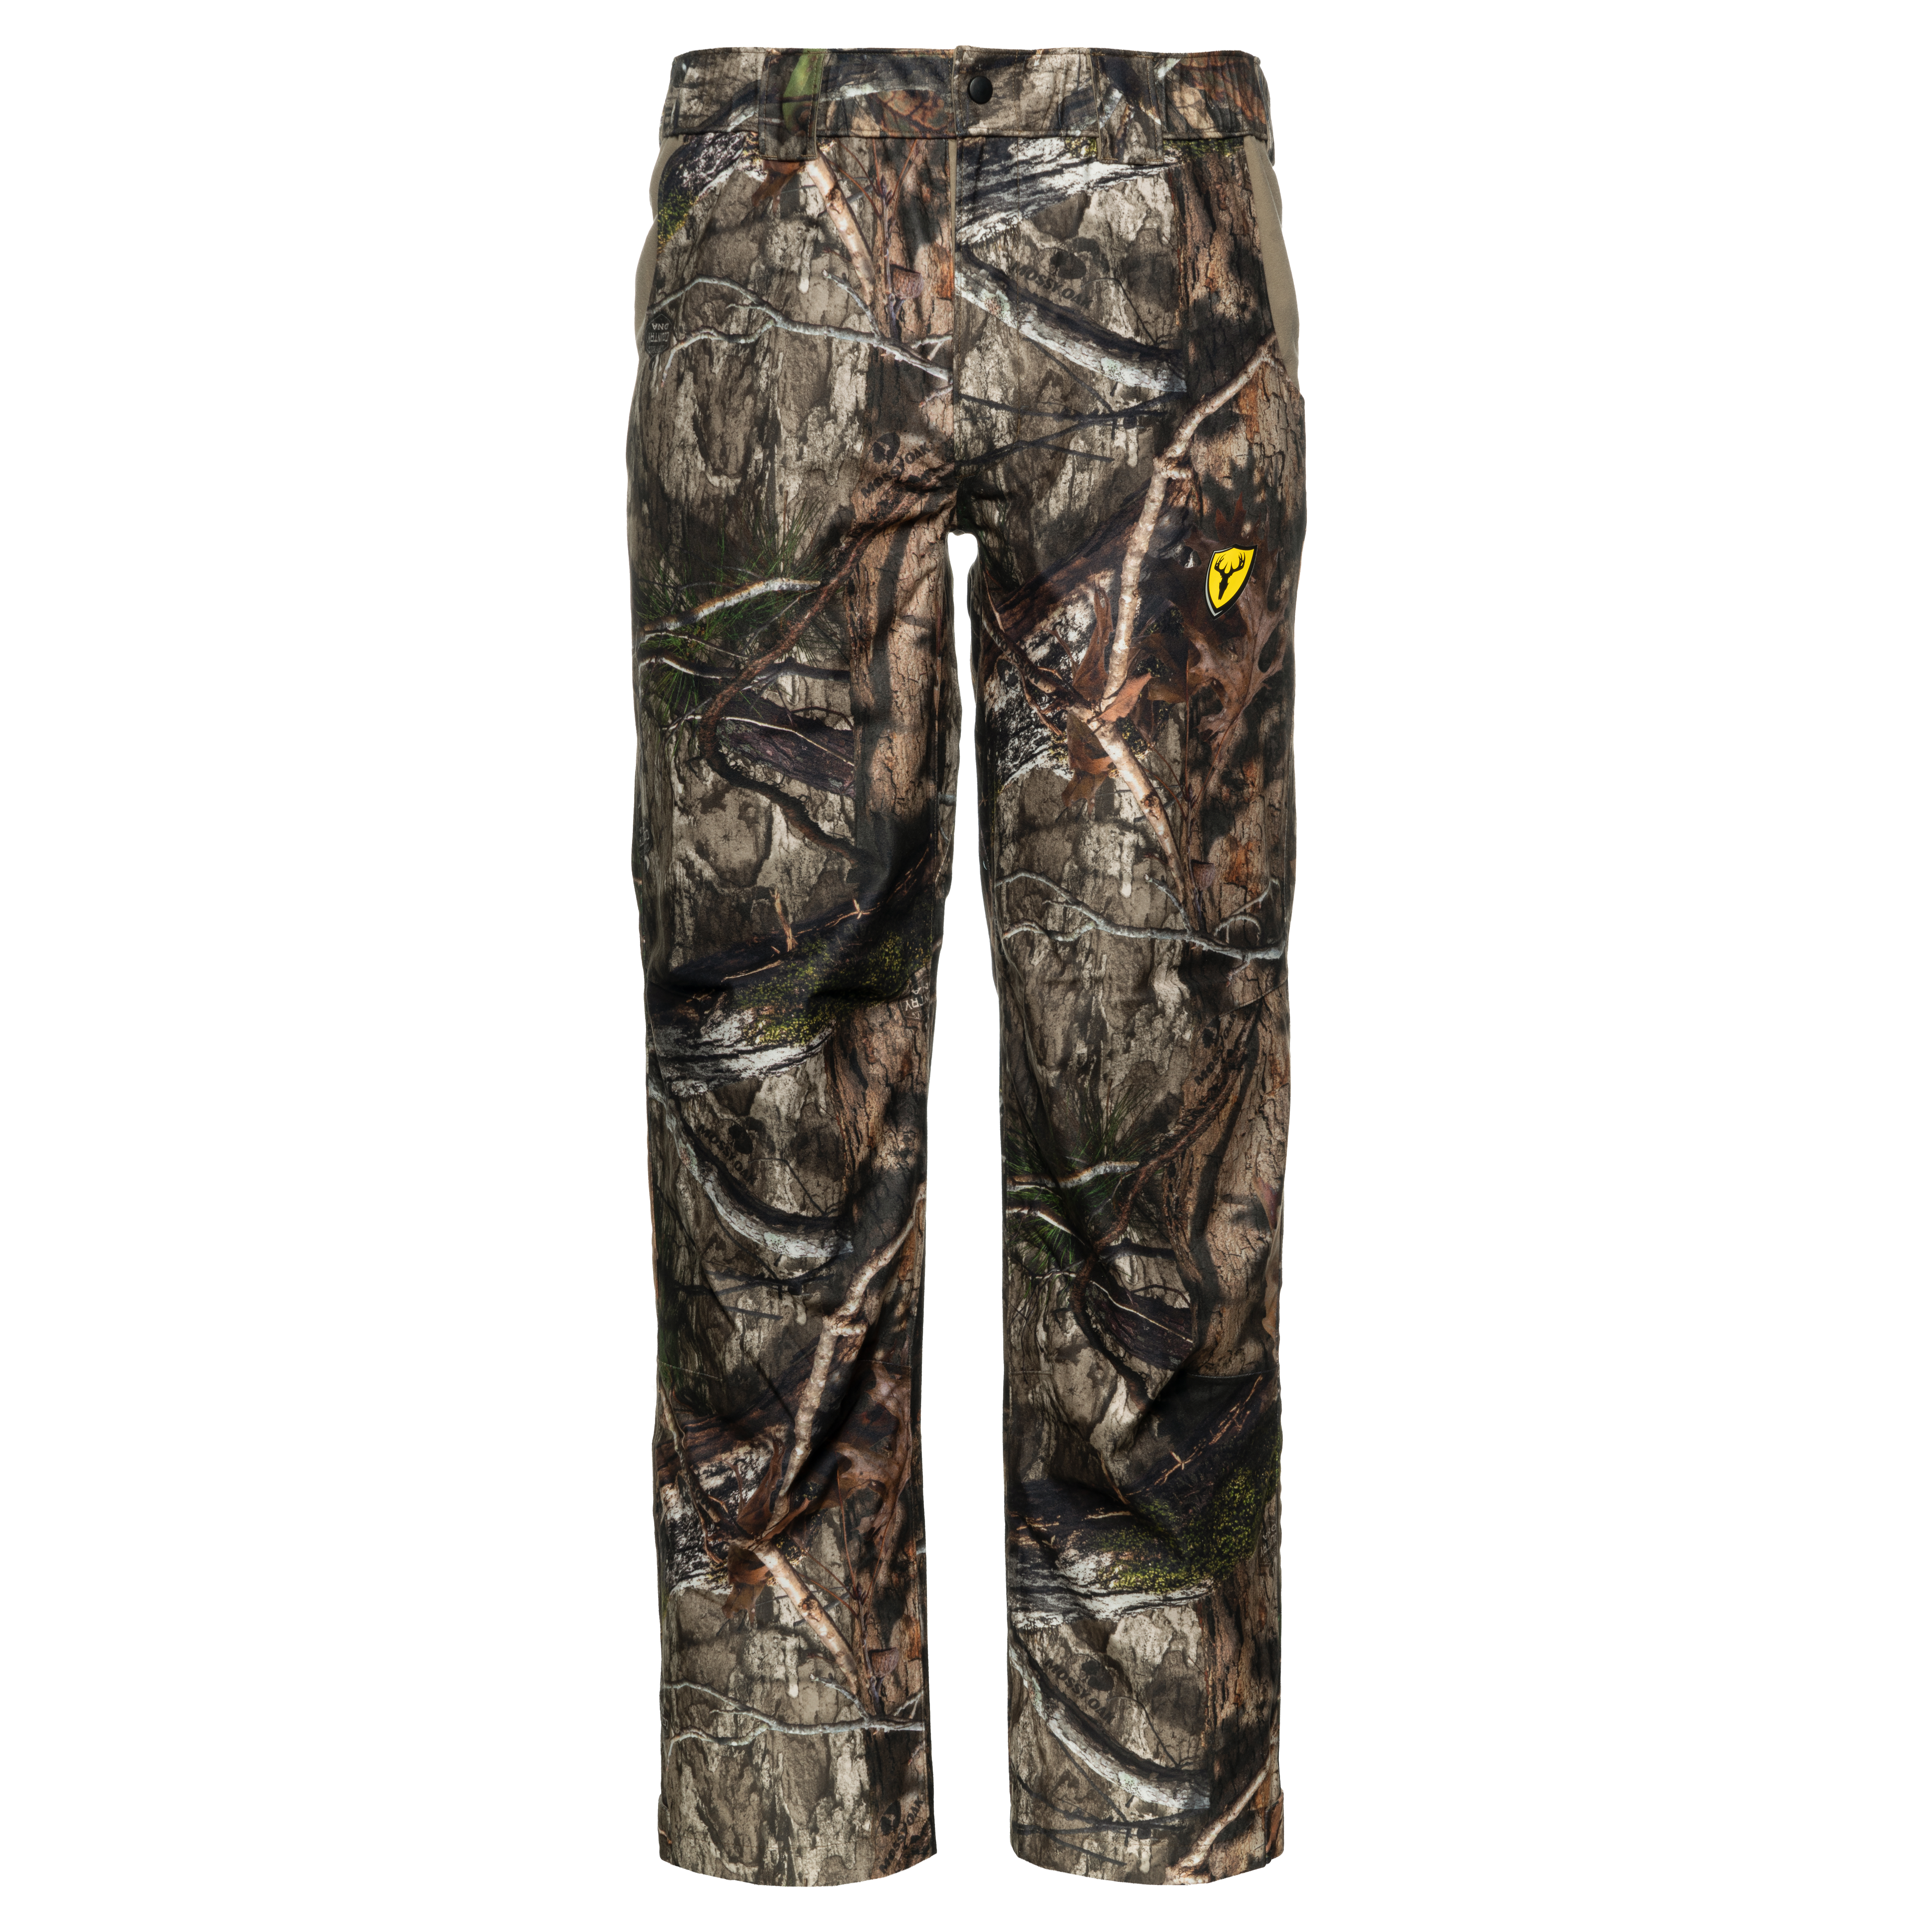 ScentBlocker-1055120-238-Drencher-Pant-rain-suit-realtree-edge-mossy-oak-country-dna-coyote-hunting-big-tall-bigcamo